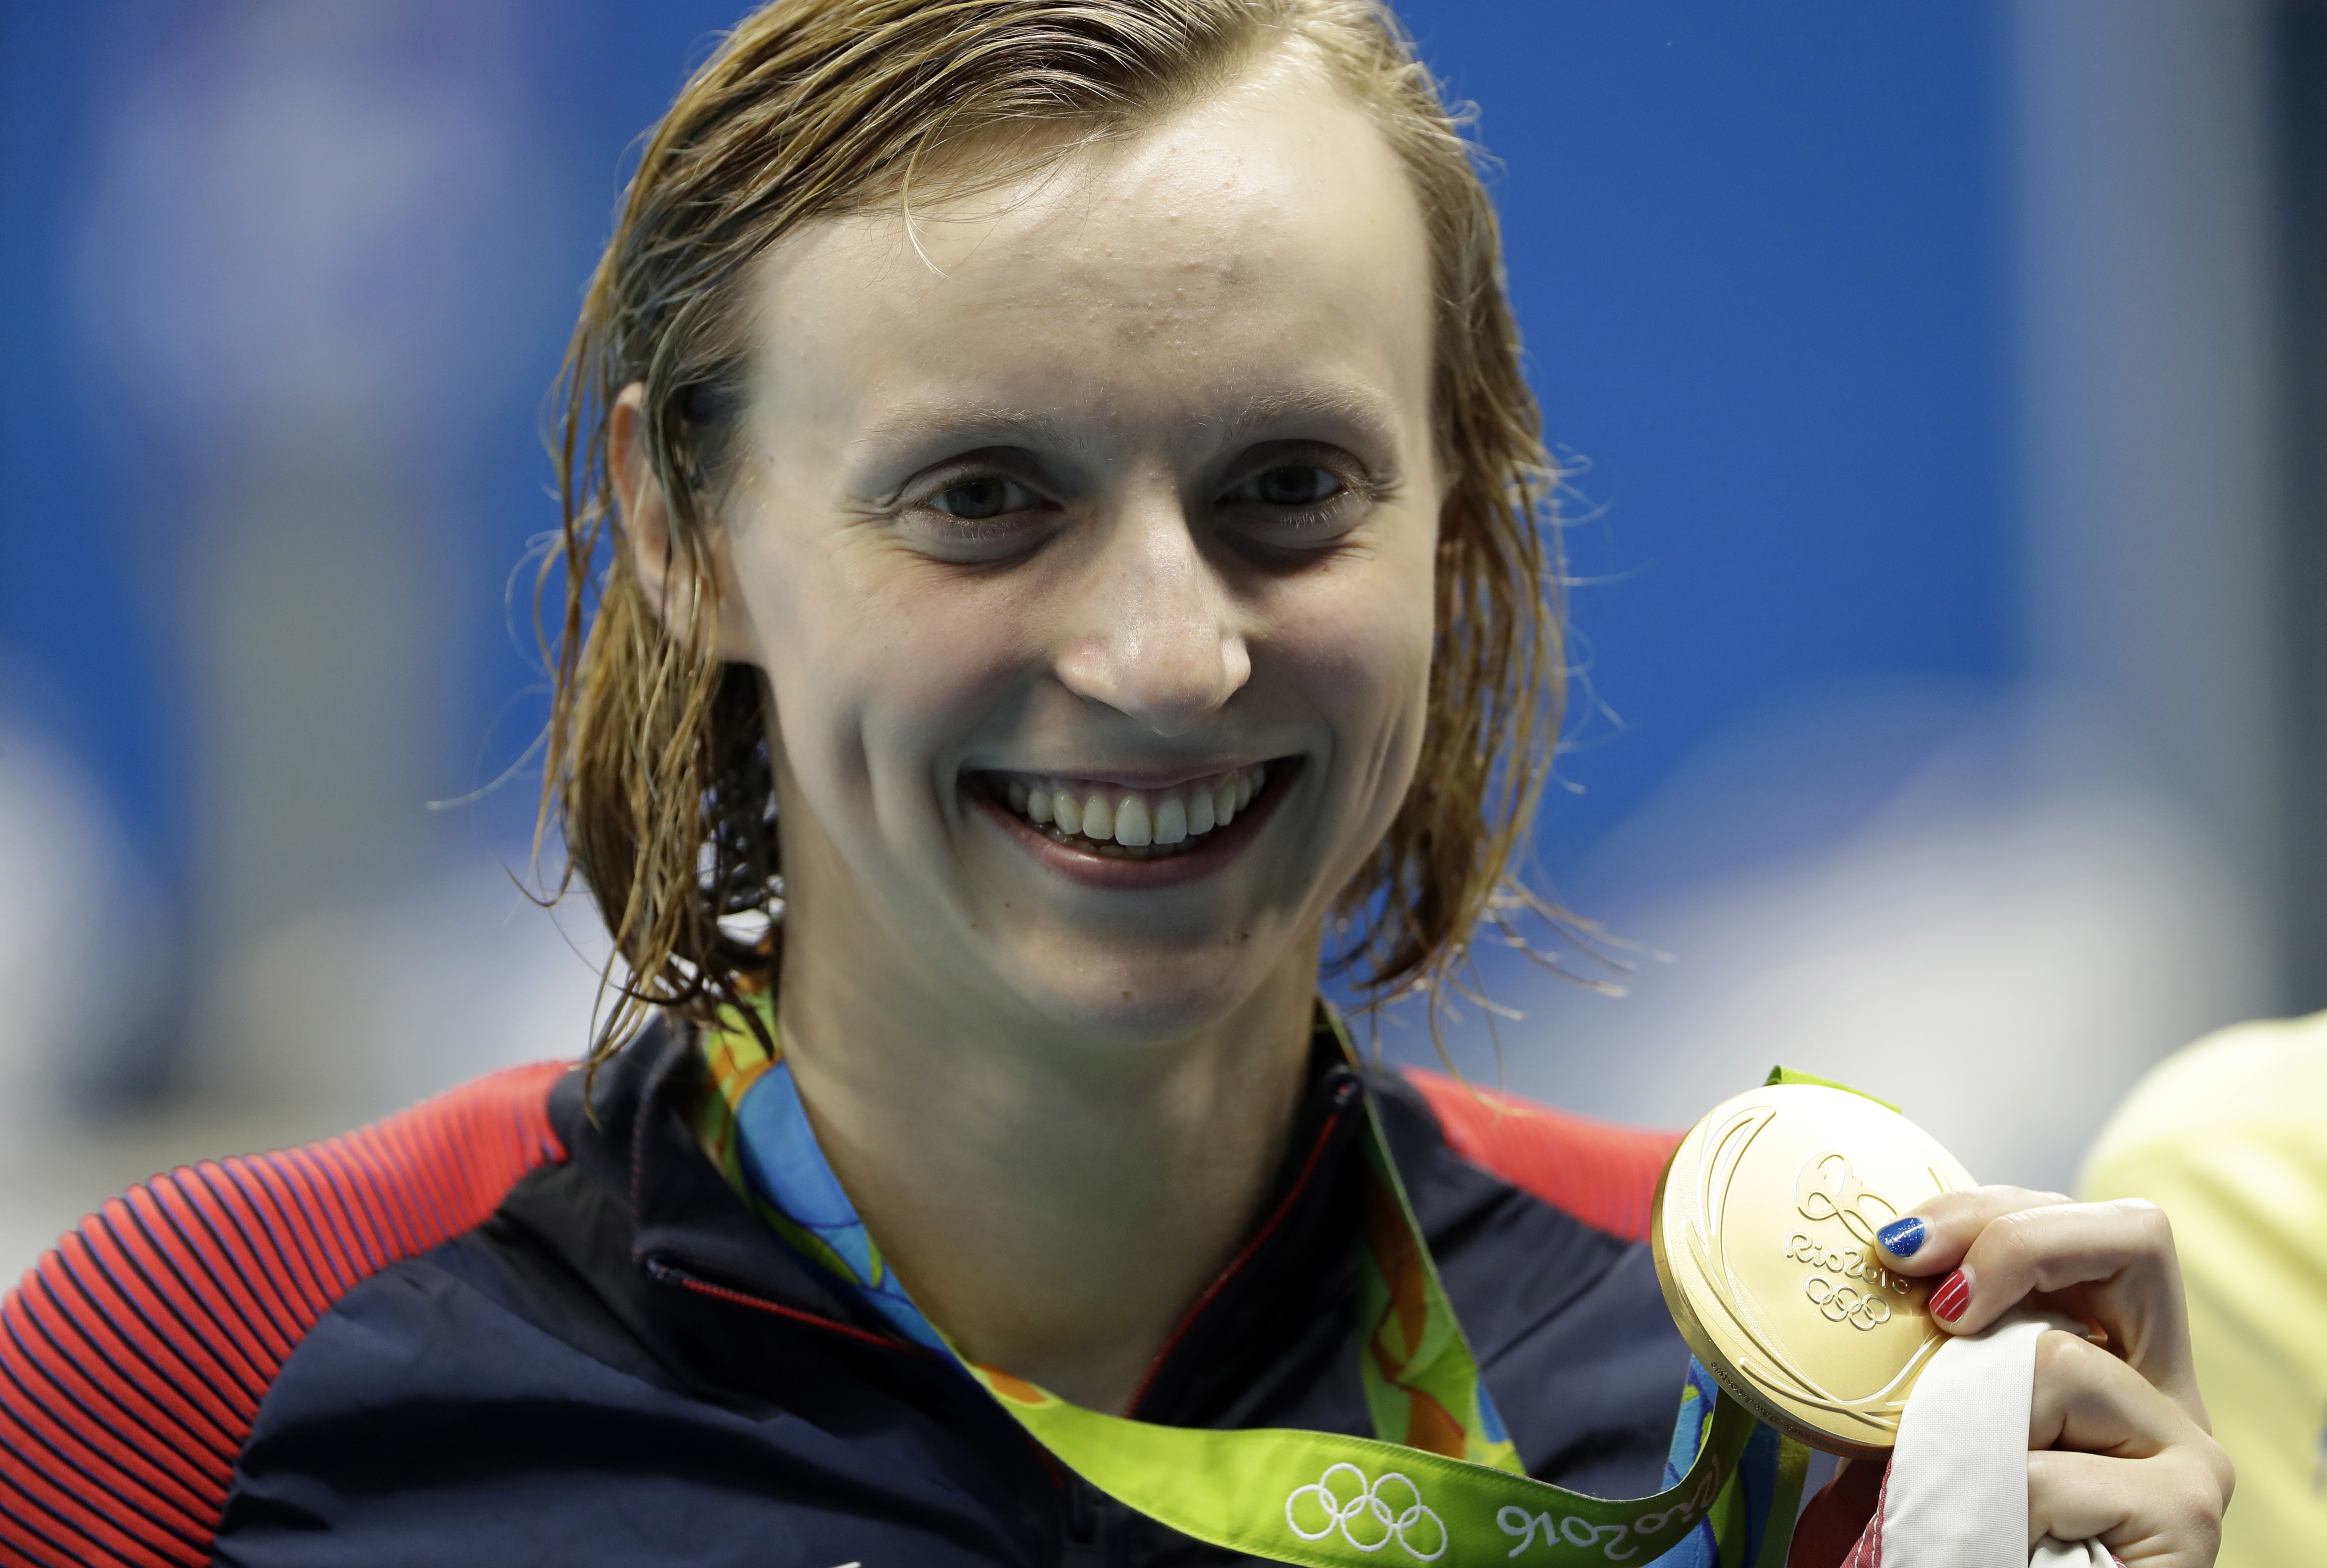 United States' Katie Ledecky holds the gold medal after the women's 200-meter freestyle during the swimming competitions at the 2016 Summer Olympics, Tuesday, Aug. 9, 2016, in Rio de Janeiro, Brazil. (AP Photo/Matt Slocum)